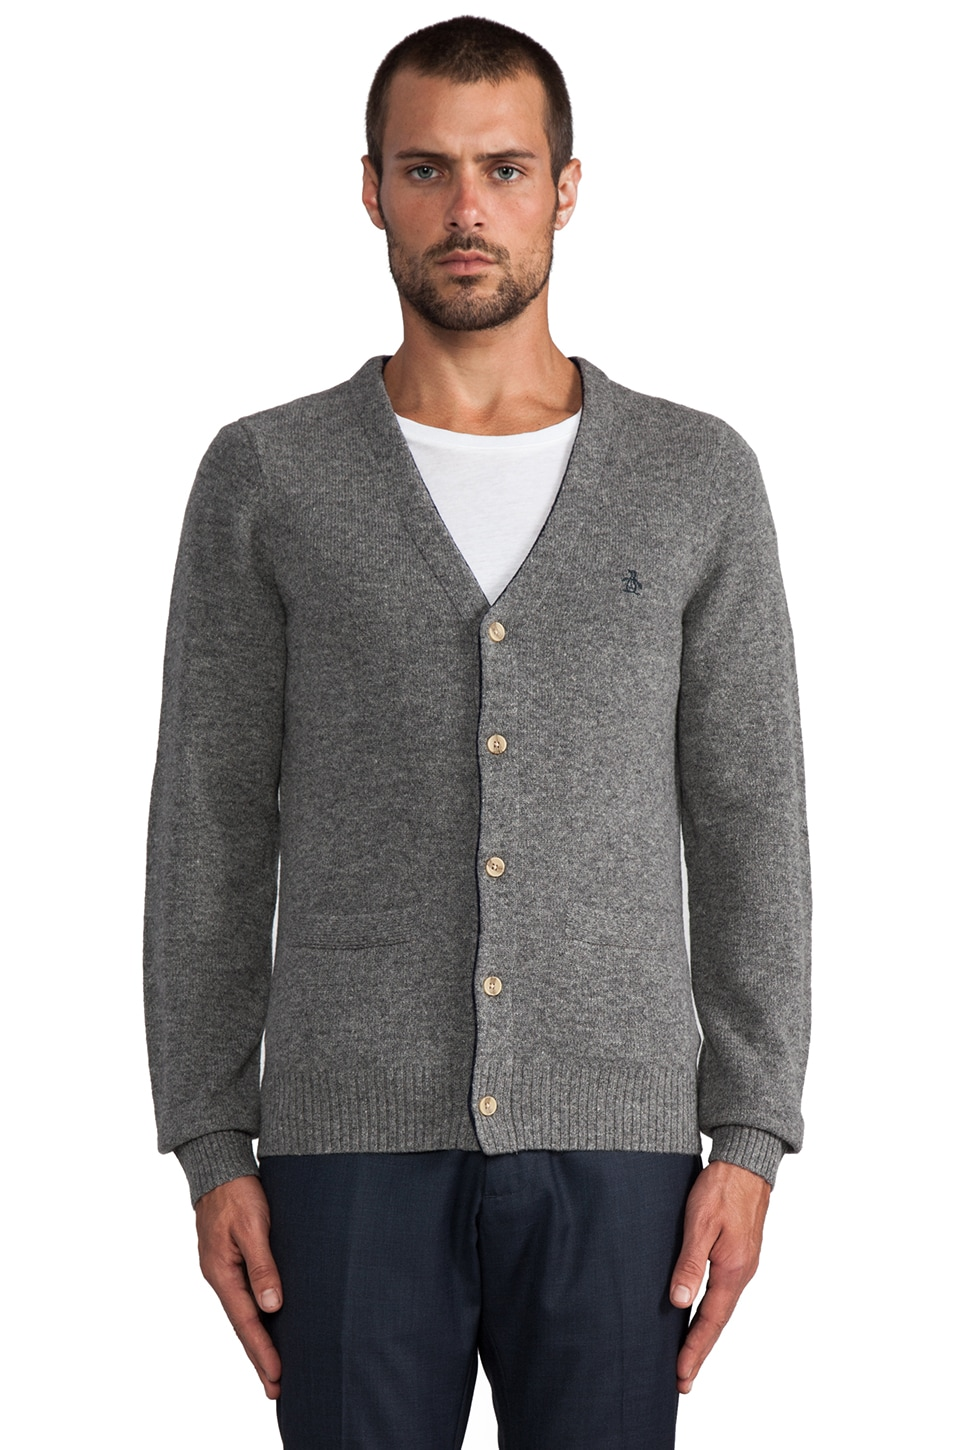 Penguin V Neck Cardigan in Dark Steel Heather